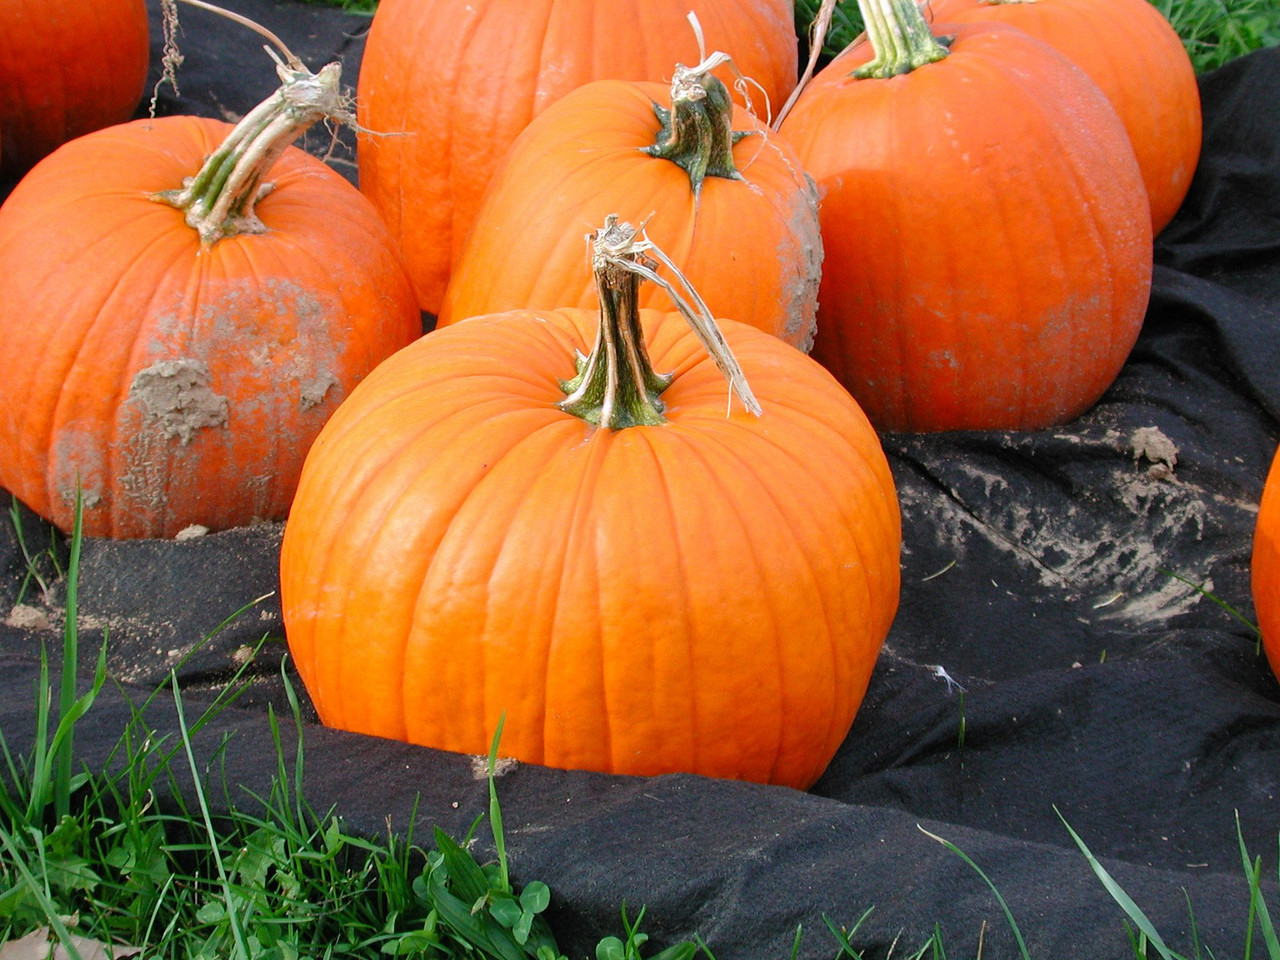 A pumpkin picture taken by Stormie Paslow - age 5 years old.